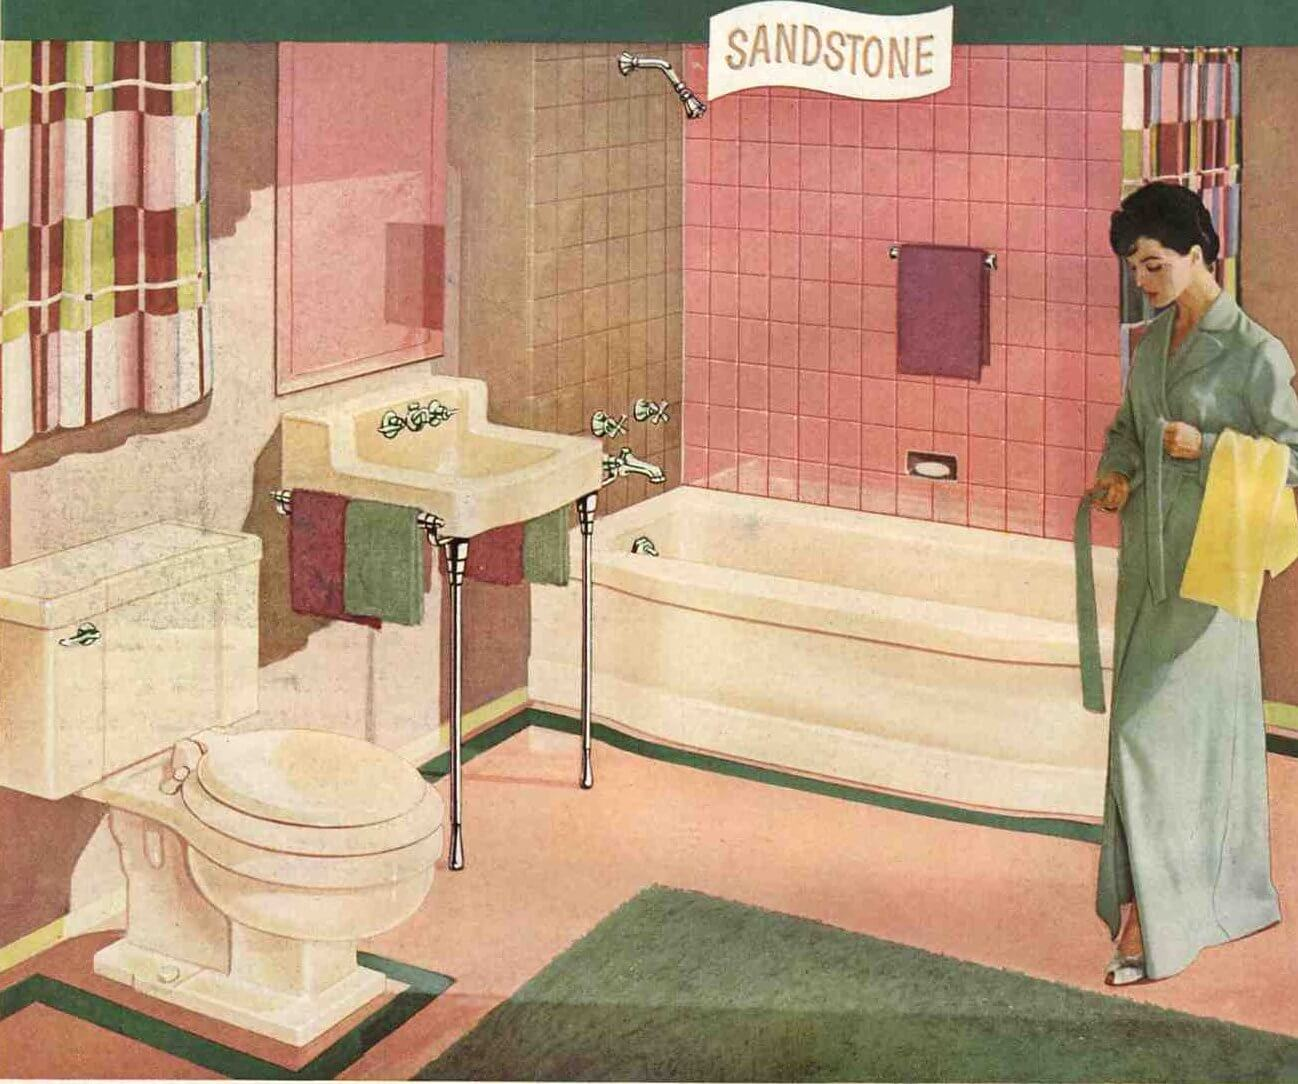 1954-briggs-sandstone-and-pink-bathroom.jpg